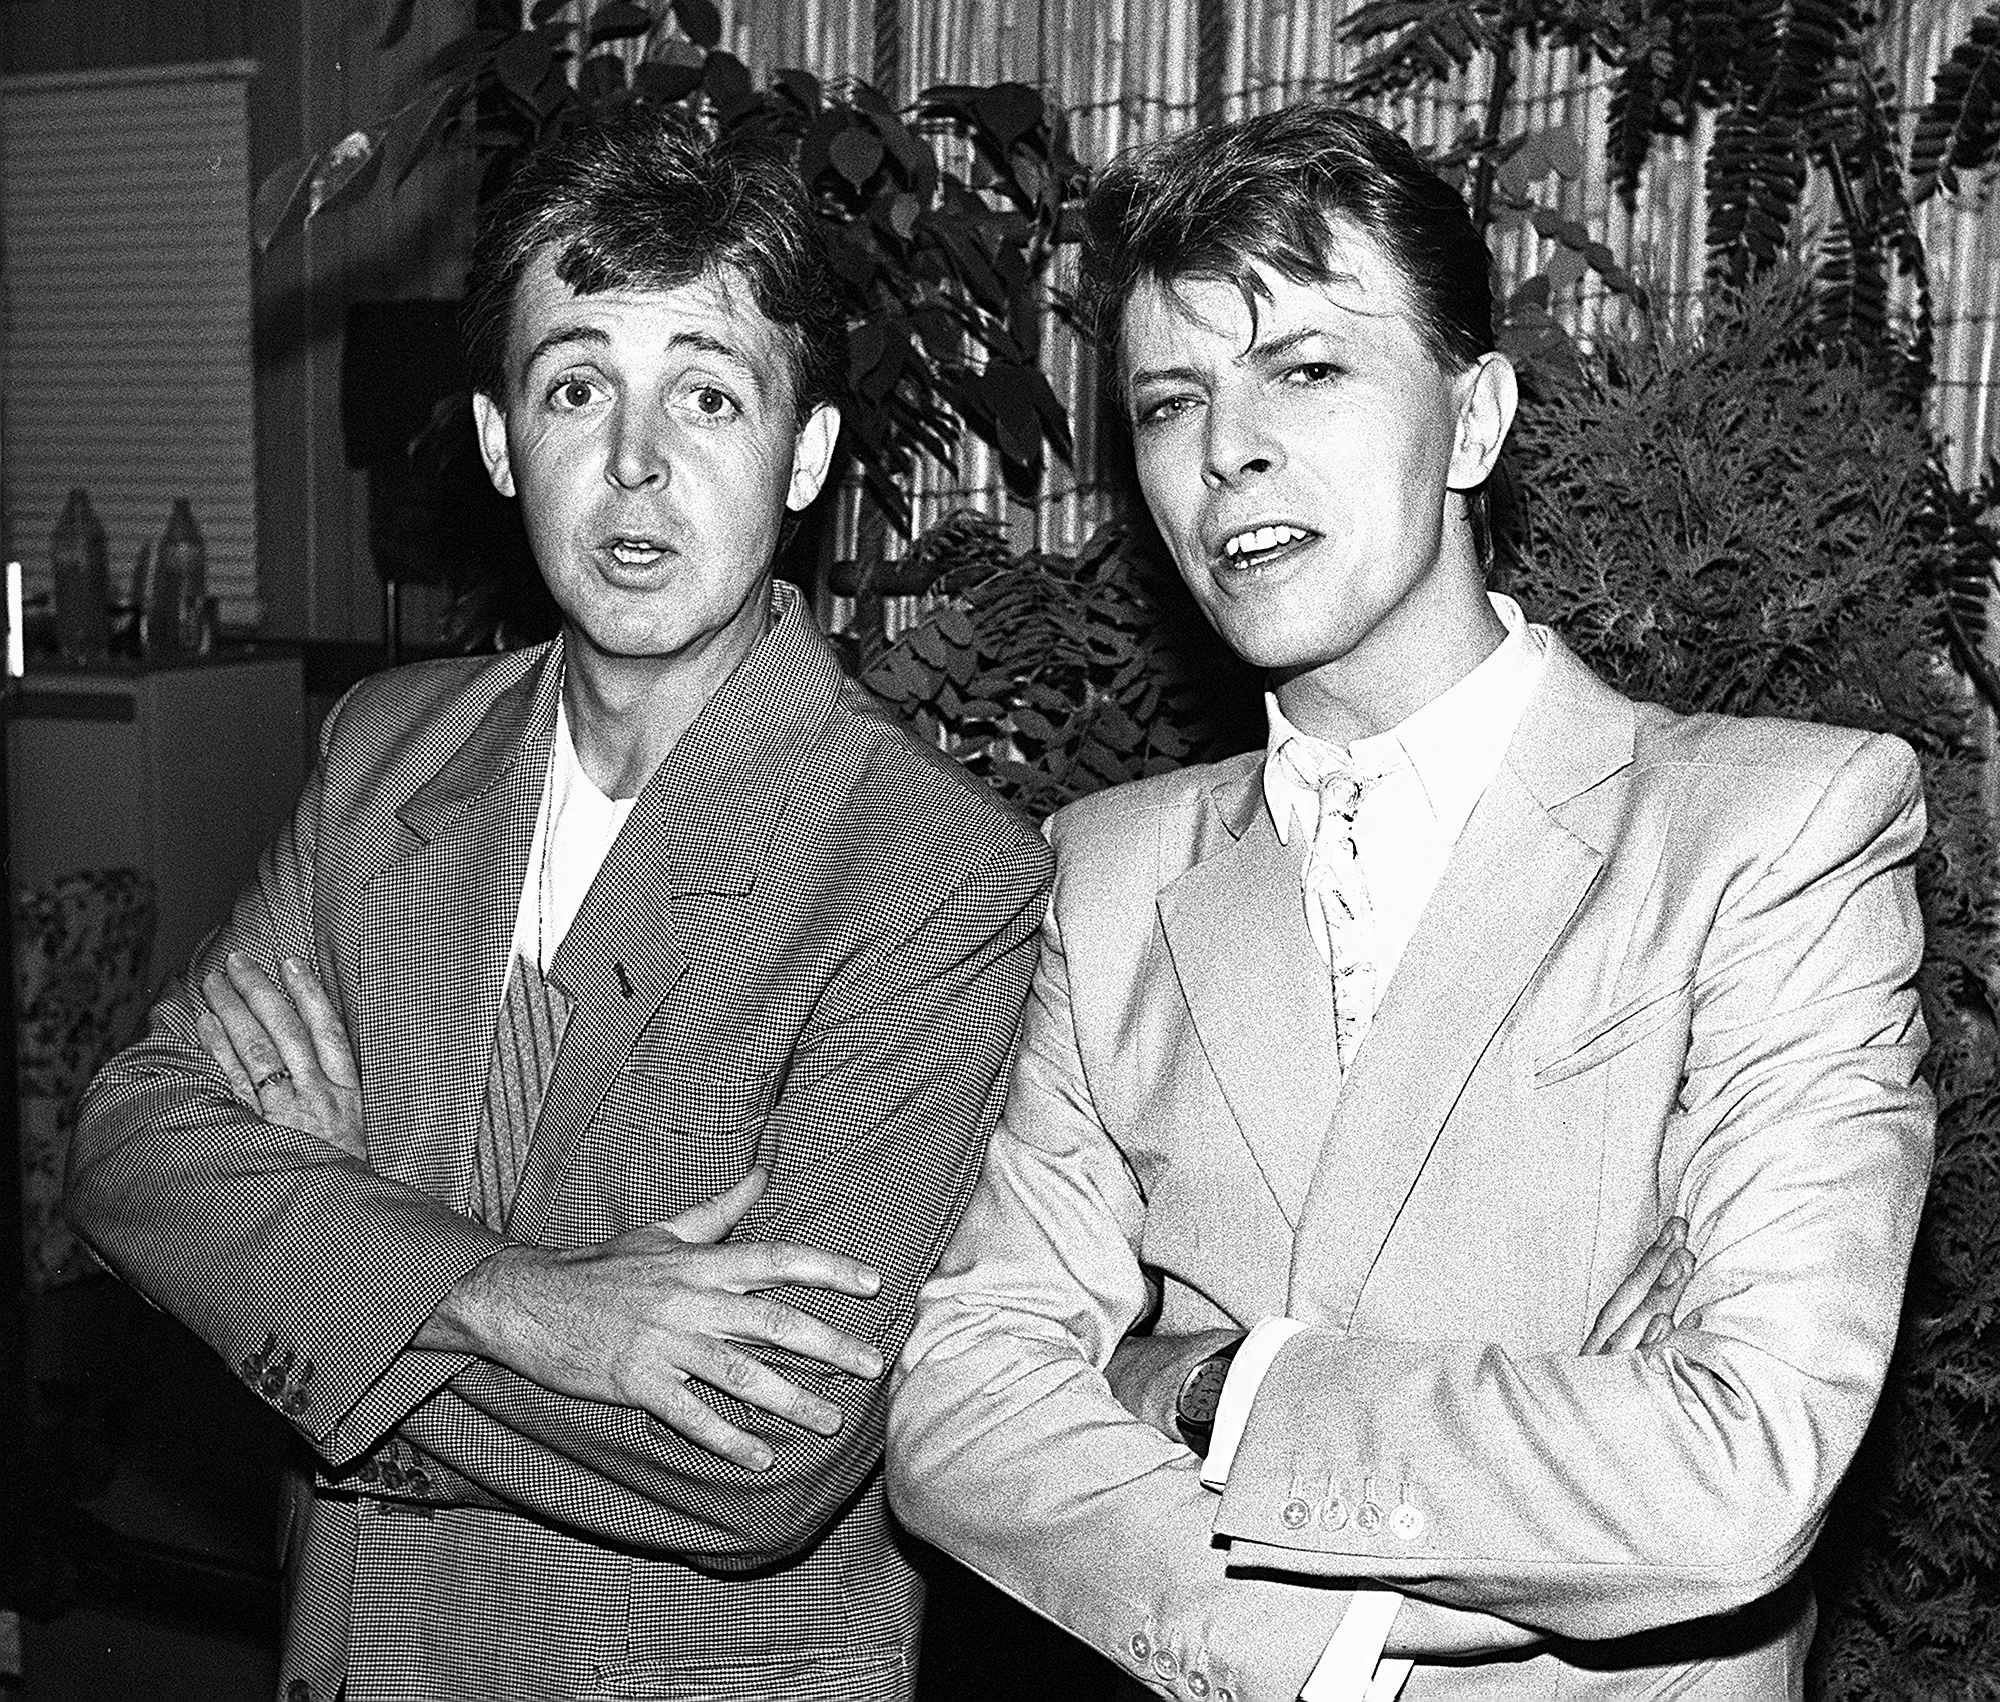 David Bowie Death Madonna Paul McCartney Mick Jagger Reactions